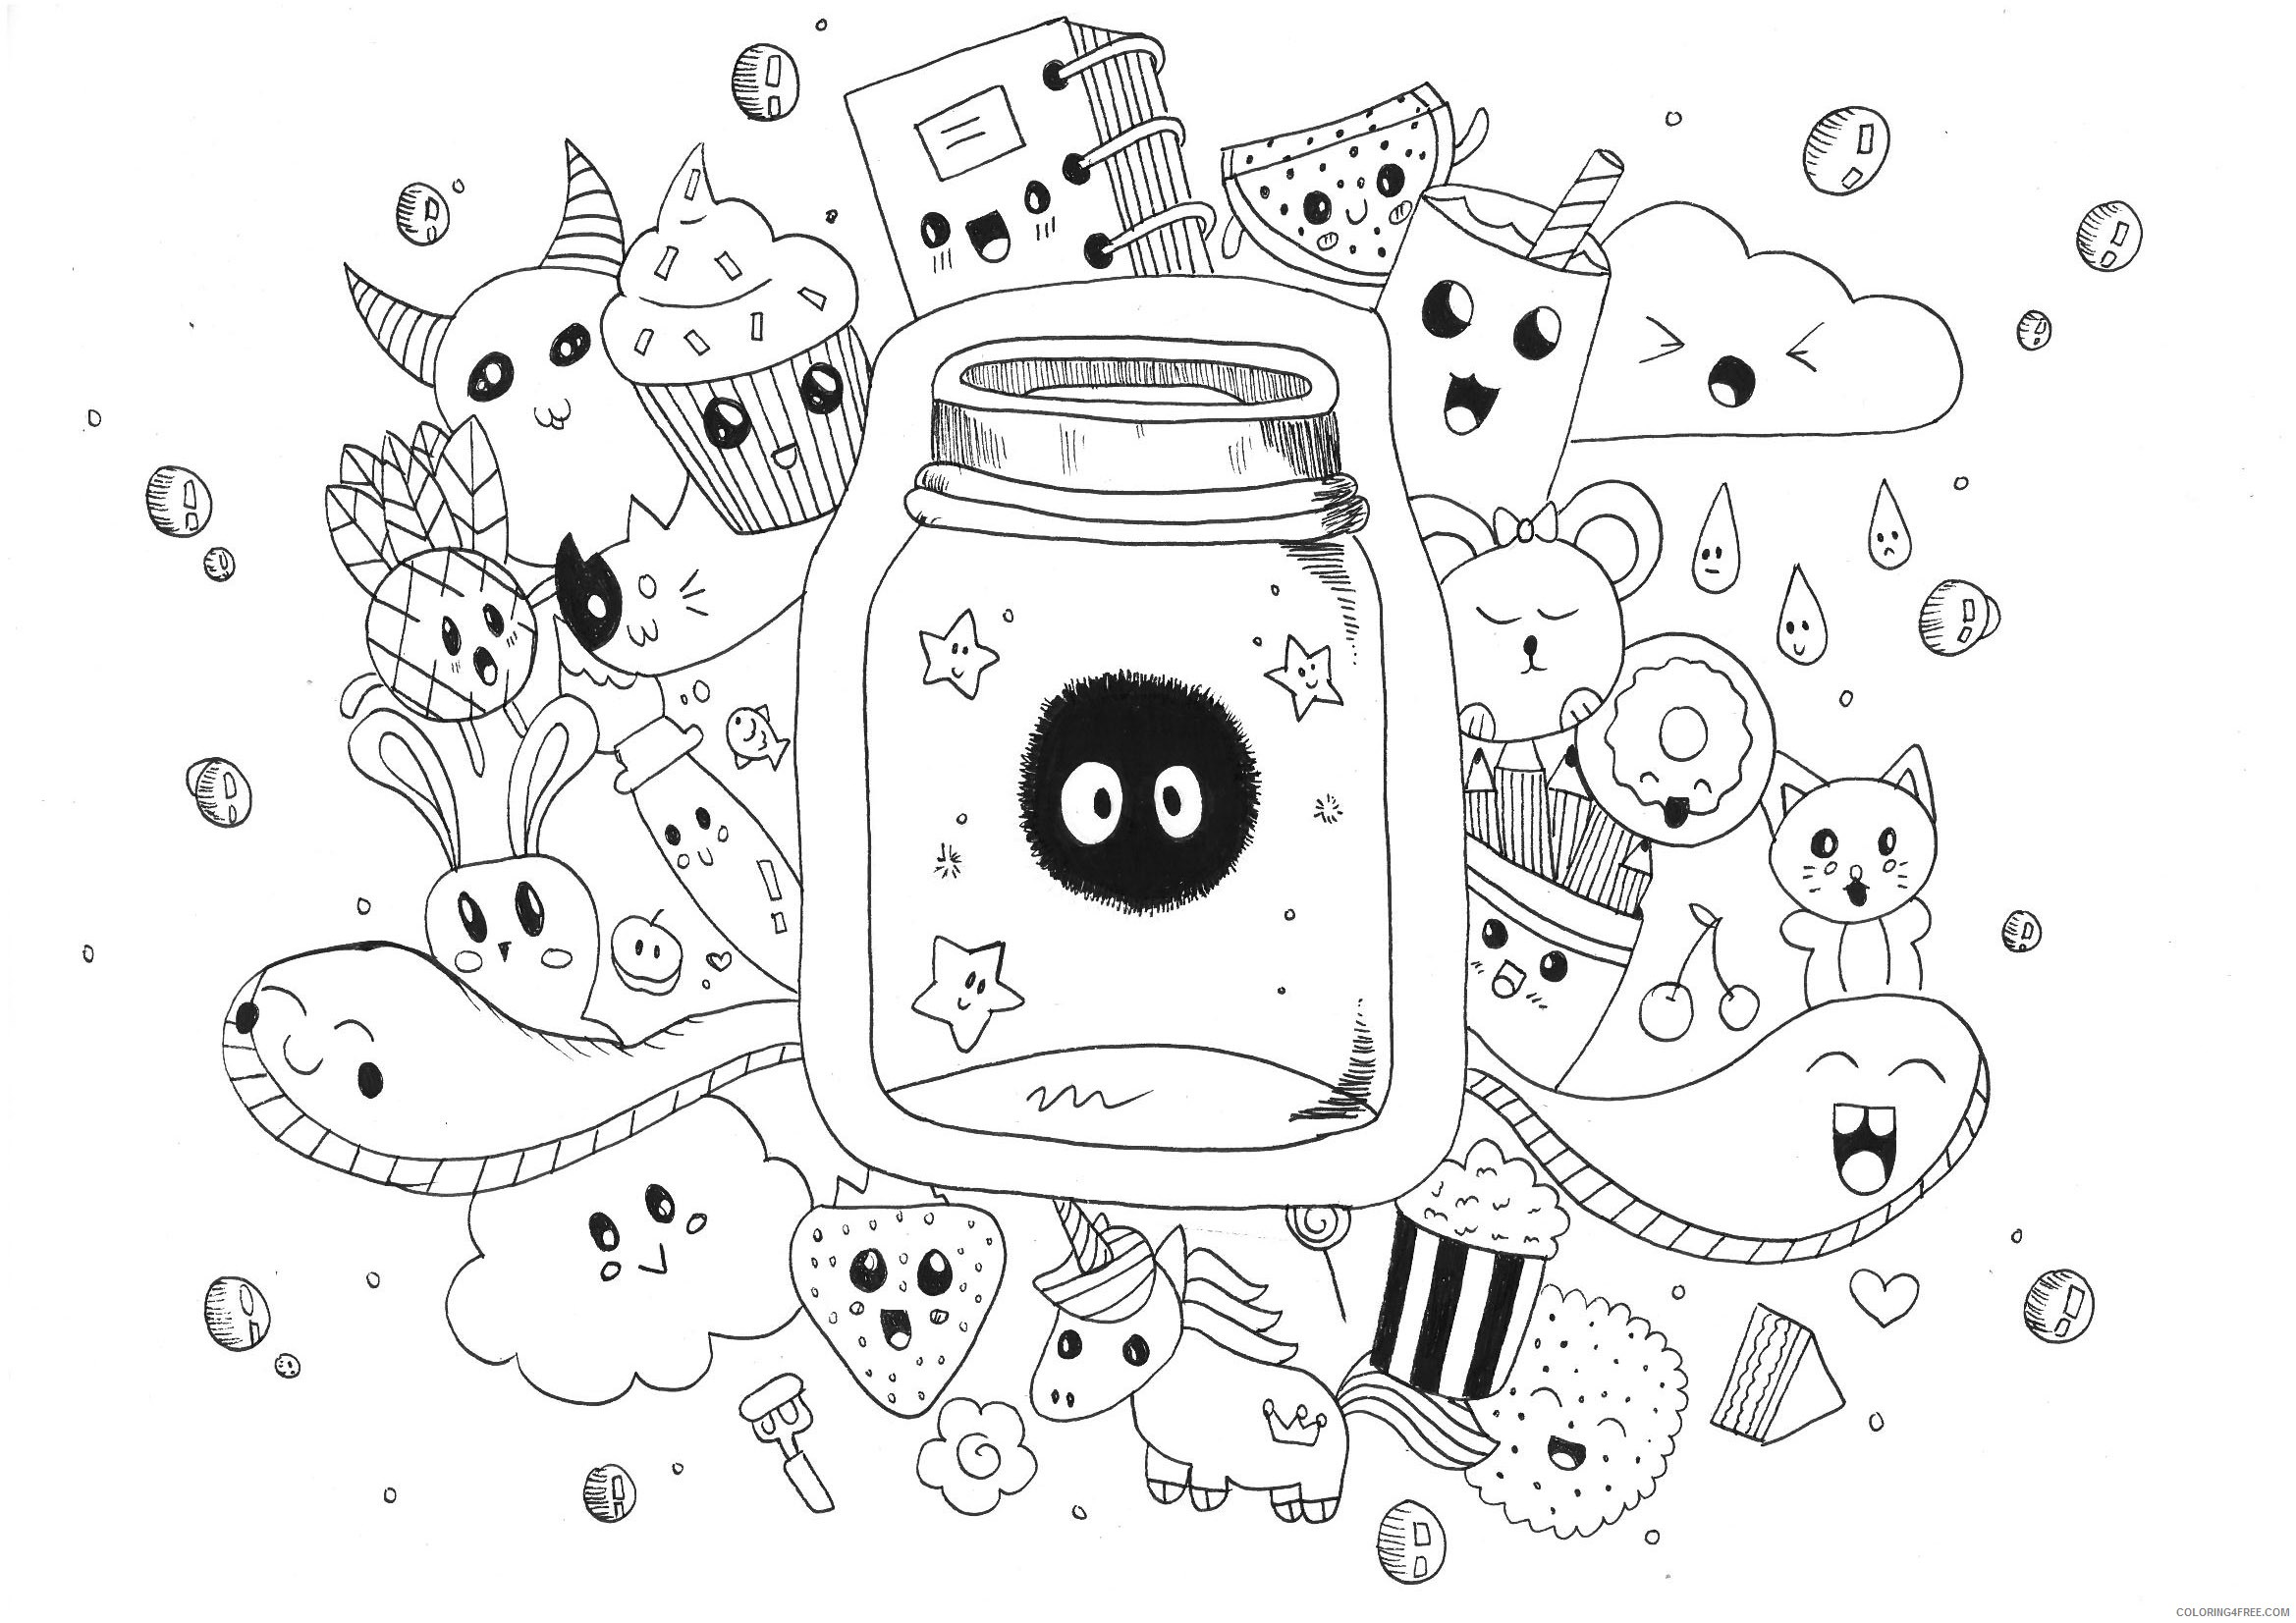 doodle coloring pages cute Coloring4free